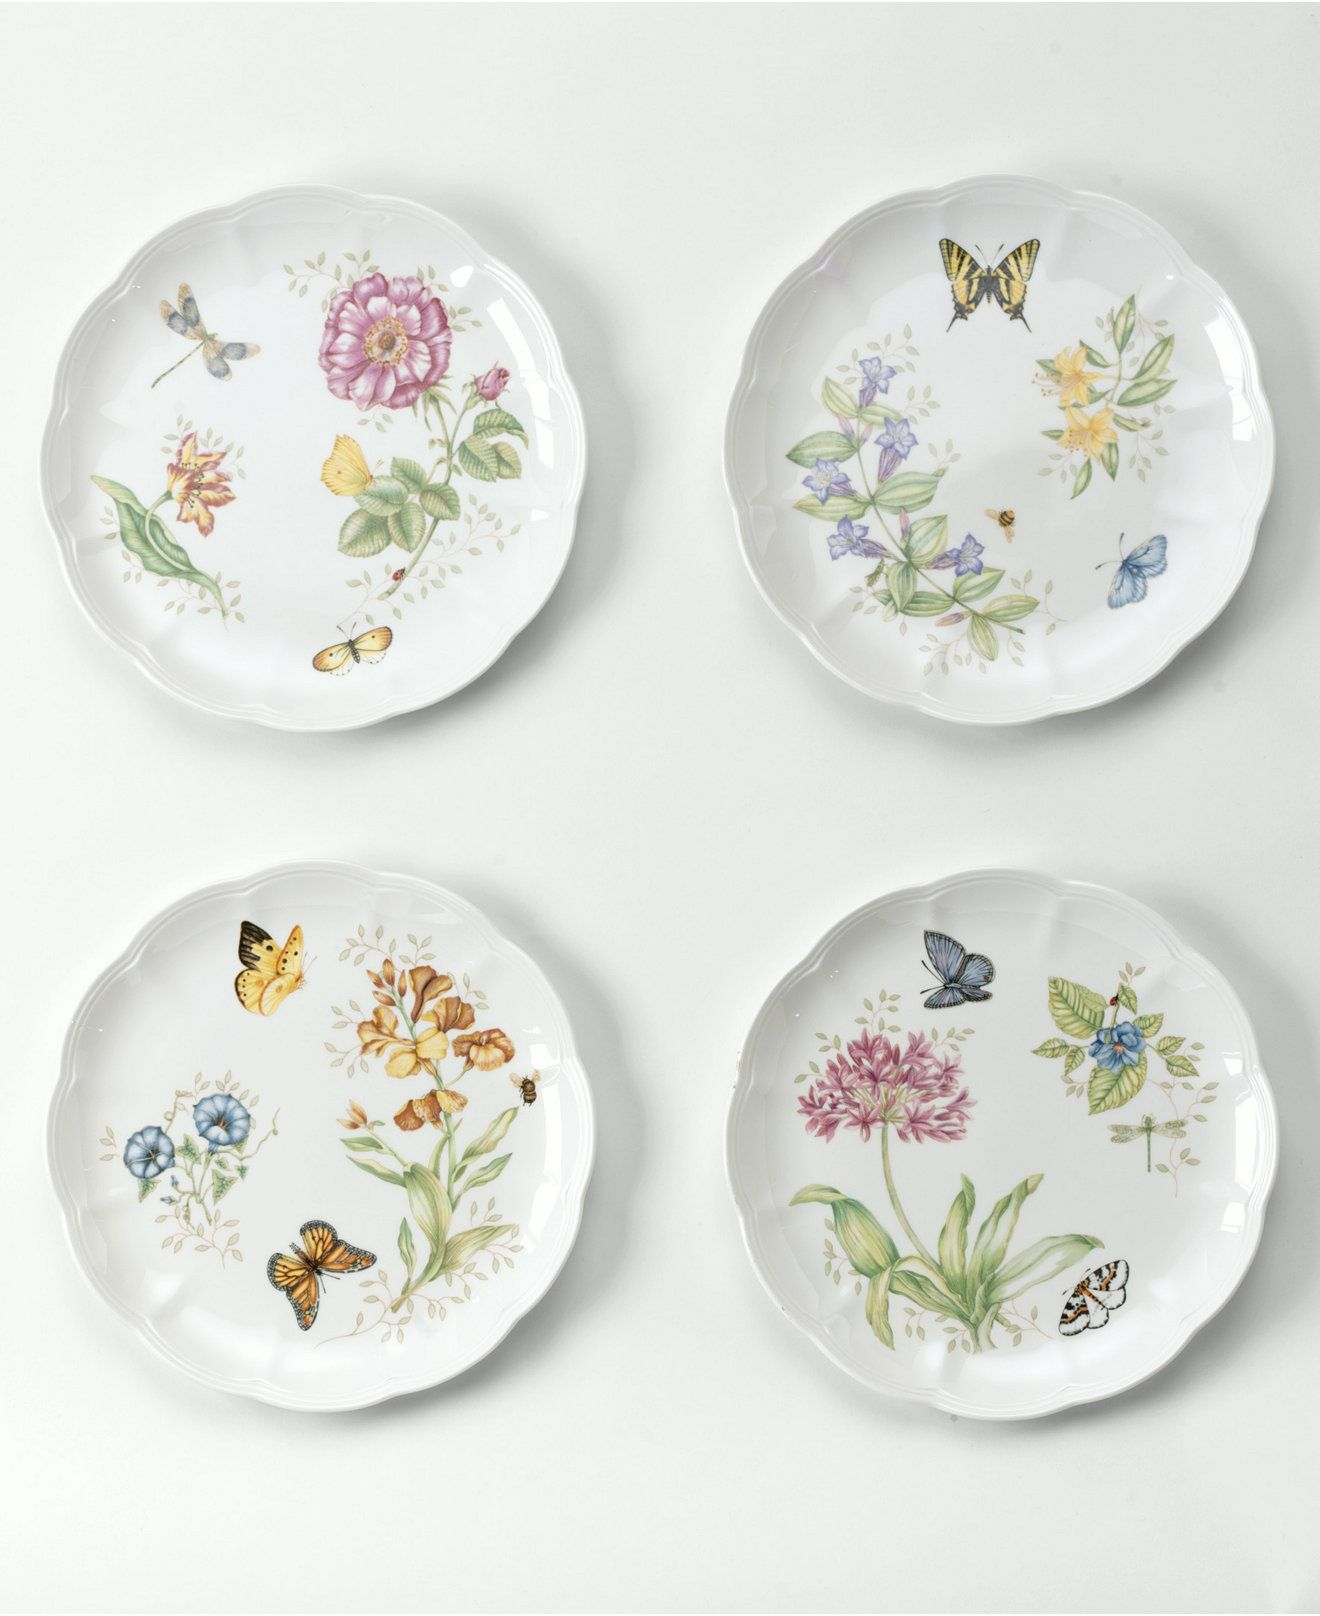 Lenox  Butterfly Meadow  Dinner Plate  sc 1 st  Pinterest : casual dinner plates - pezcame.com